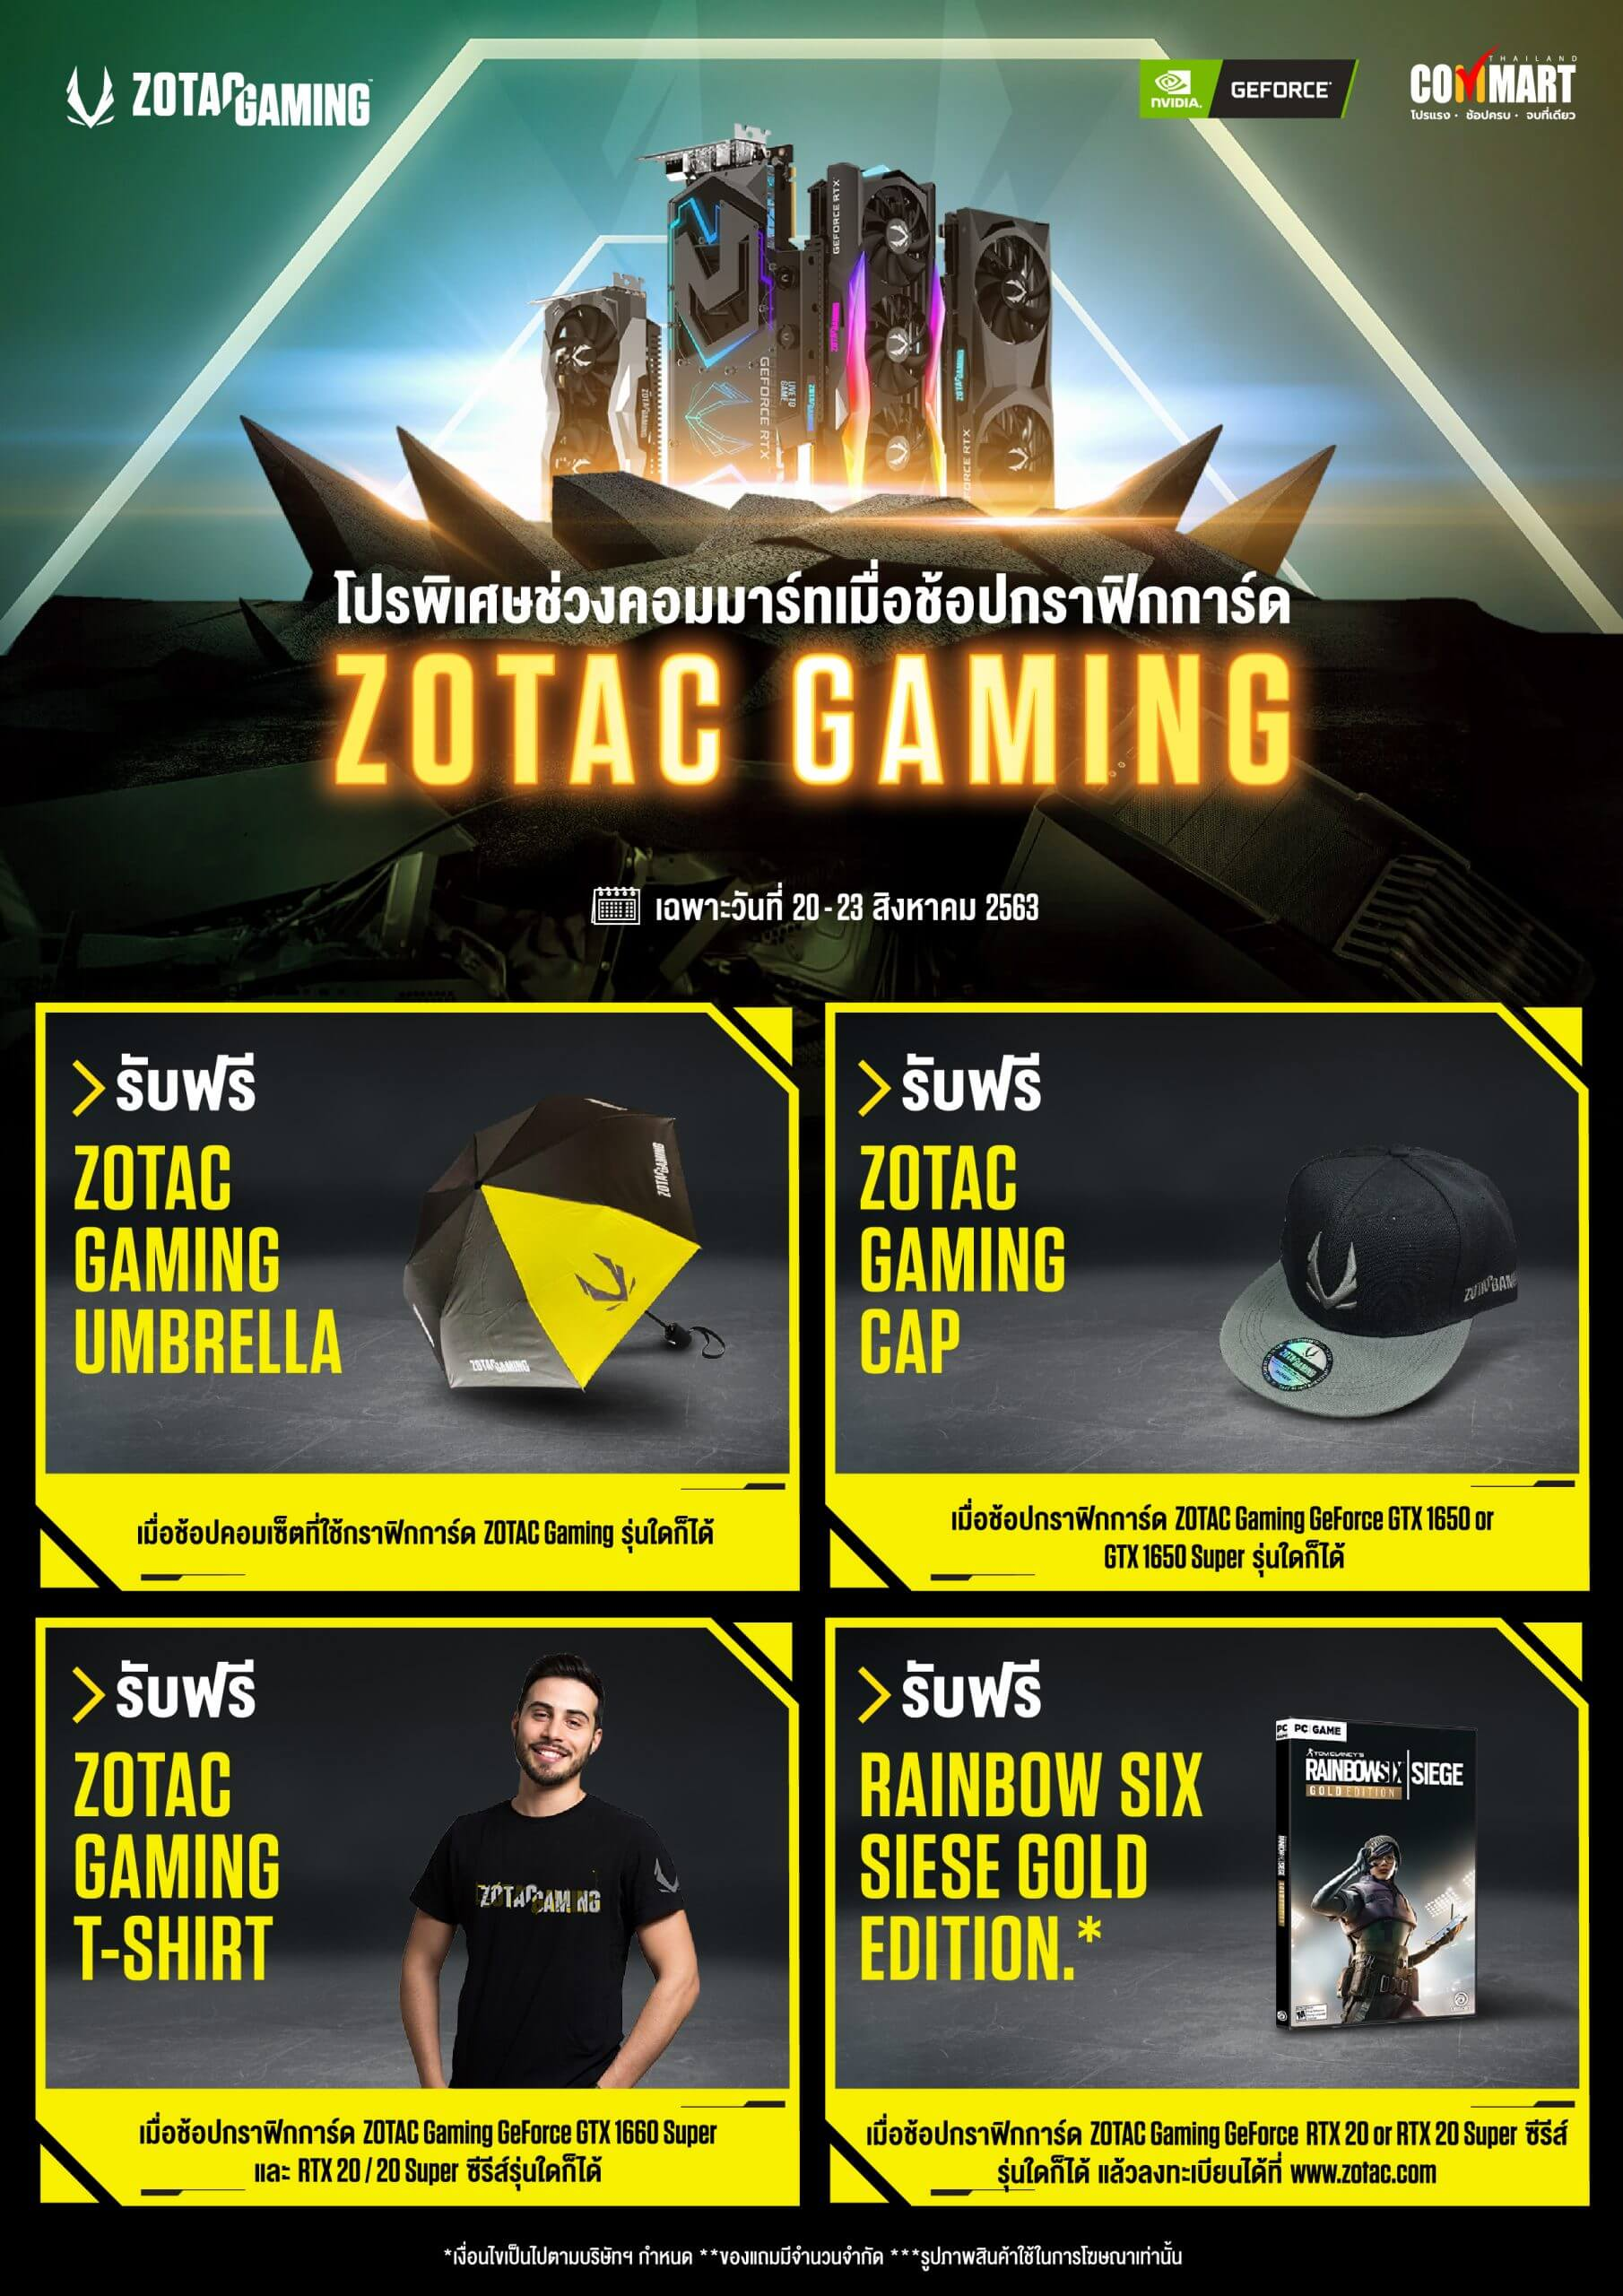 zotac gaming commart A4 cre 01 scaled 1